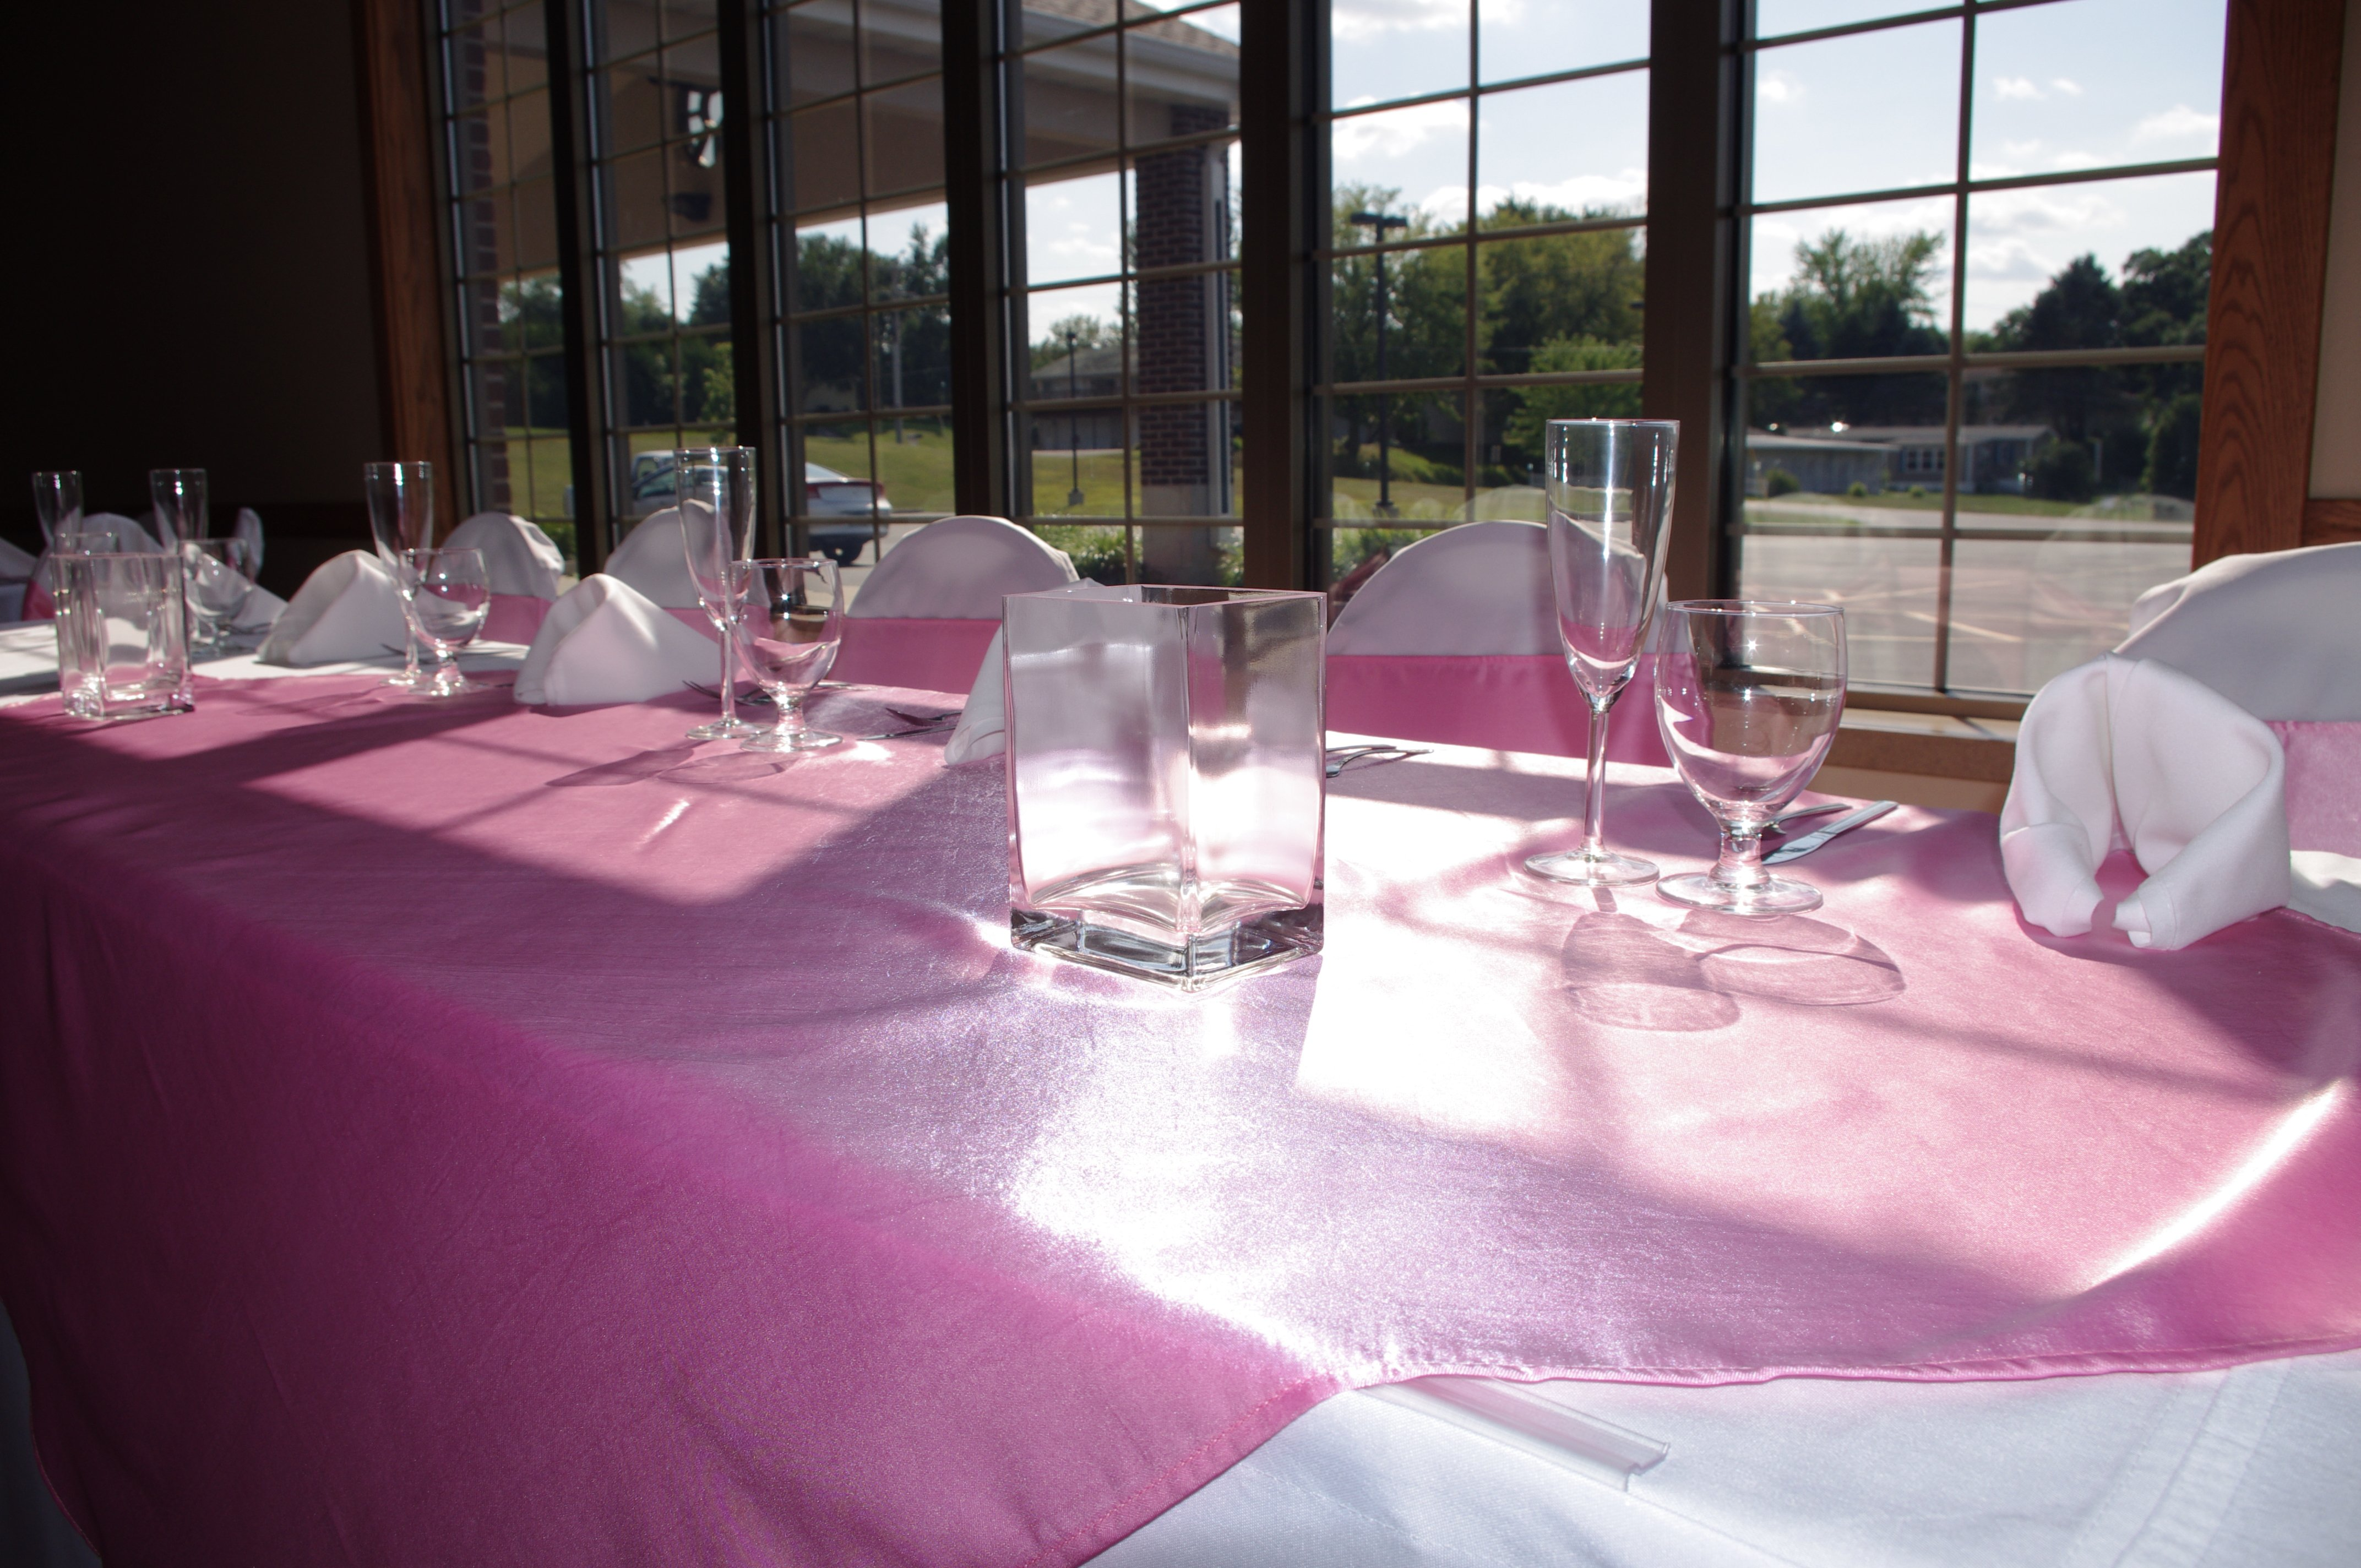 Fruechte Room - head table with rose tablecloth